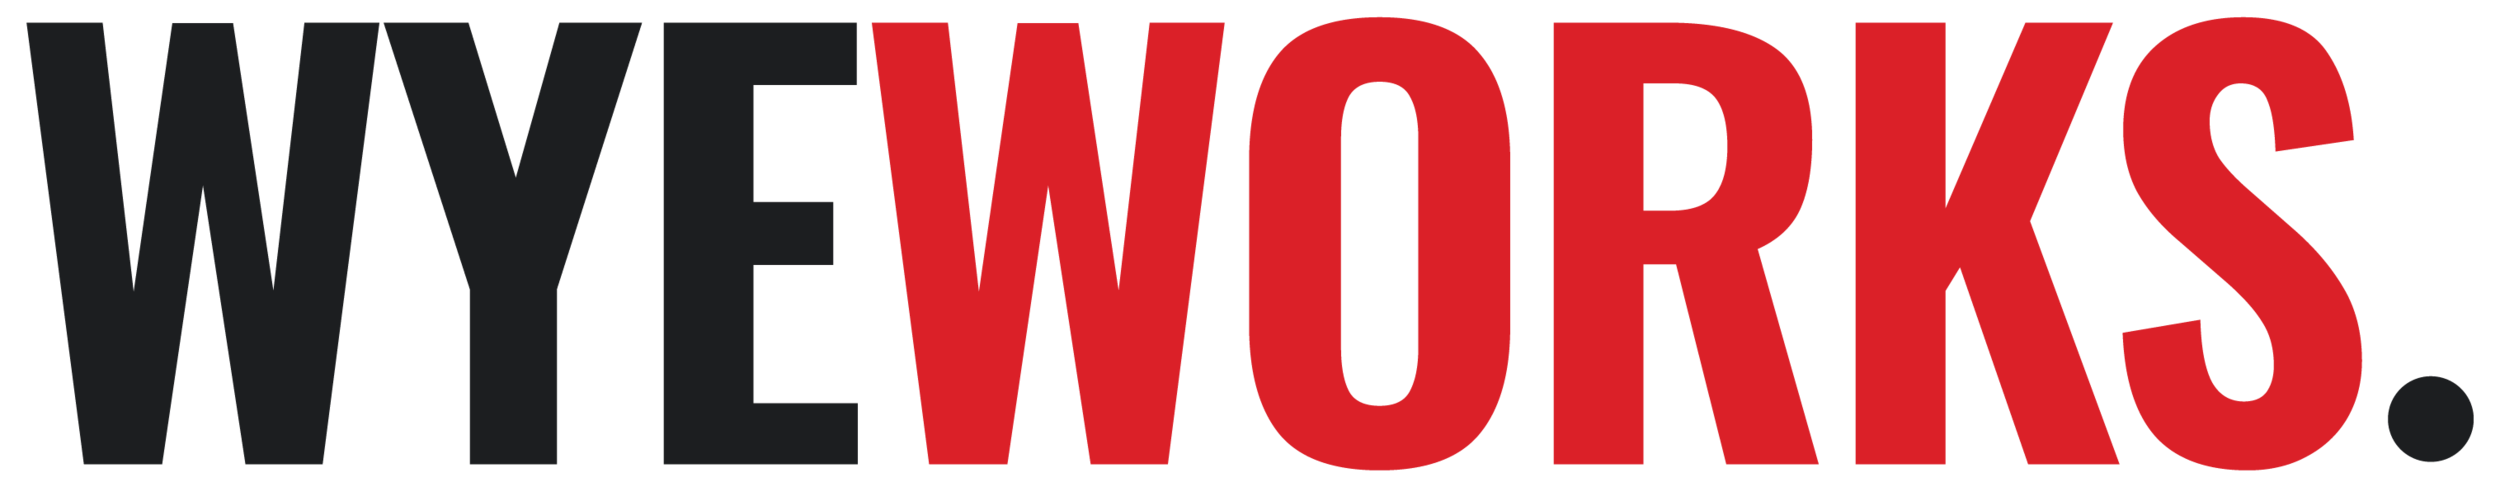 Wyeworks-Logo-Black-Red - Jose Ignacio Costa.png